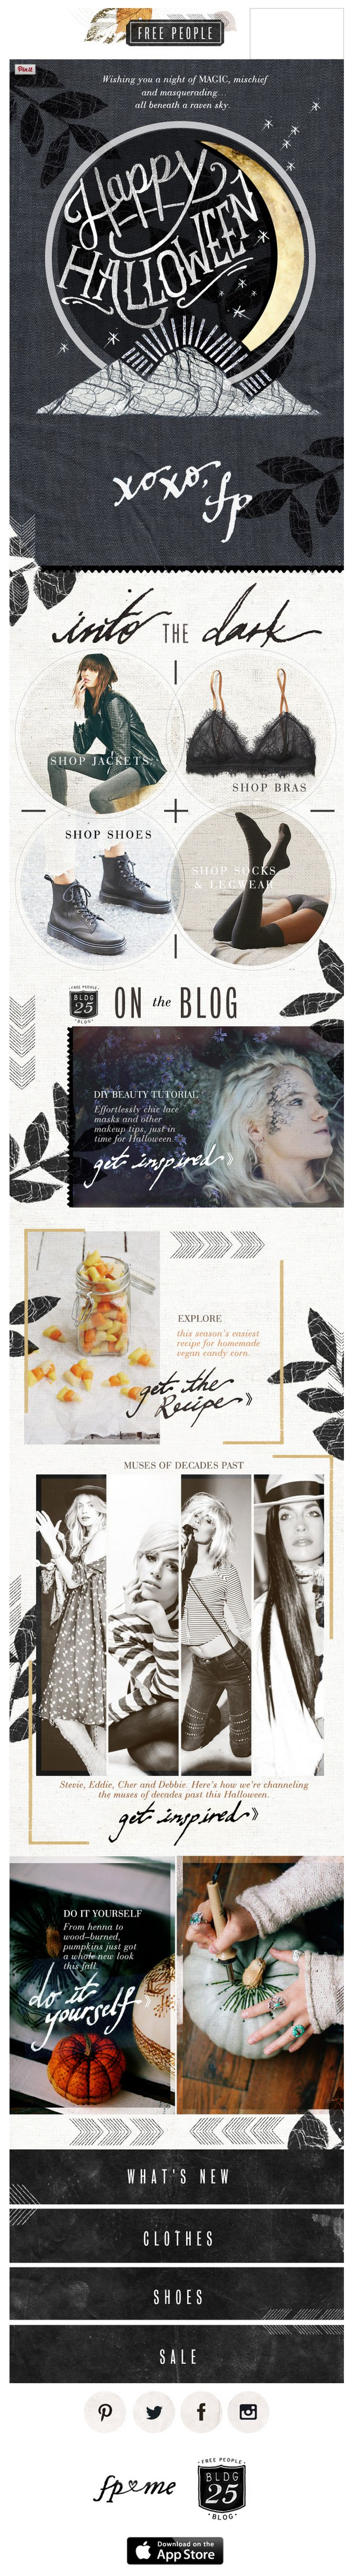 Free People Halloween email 2014